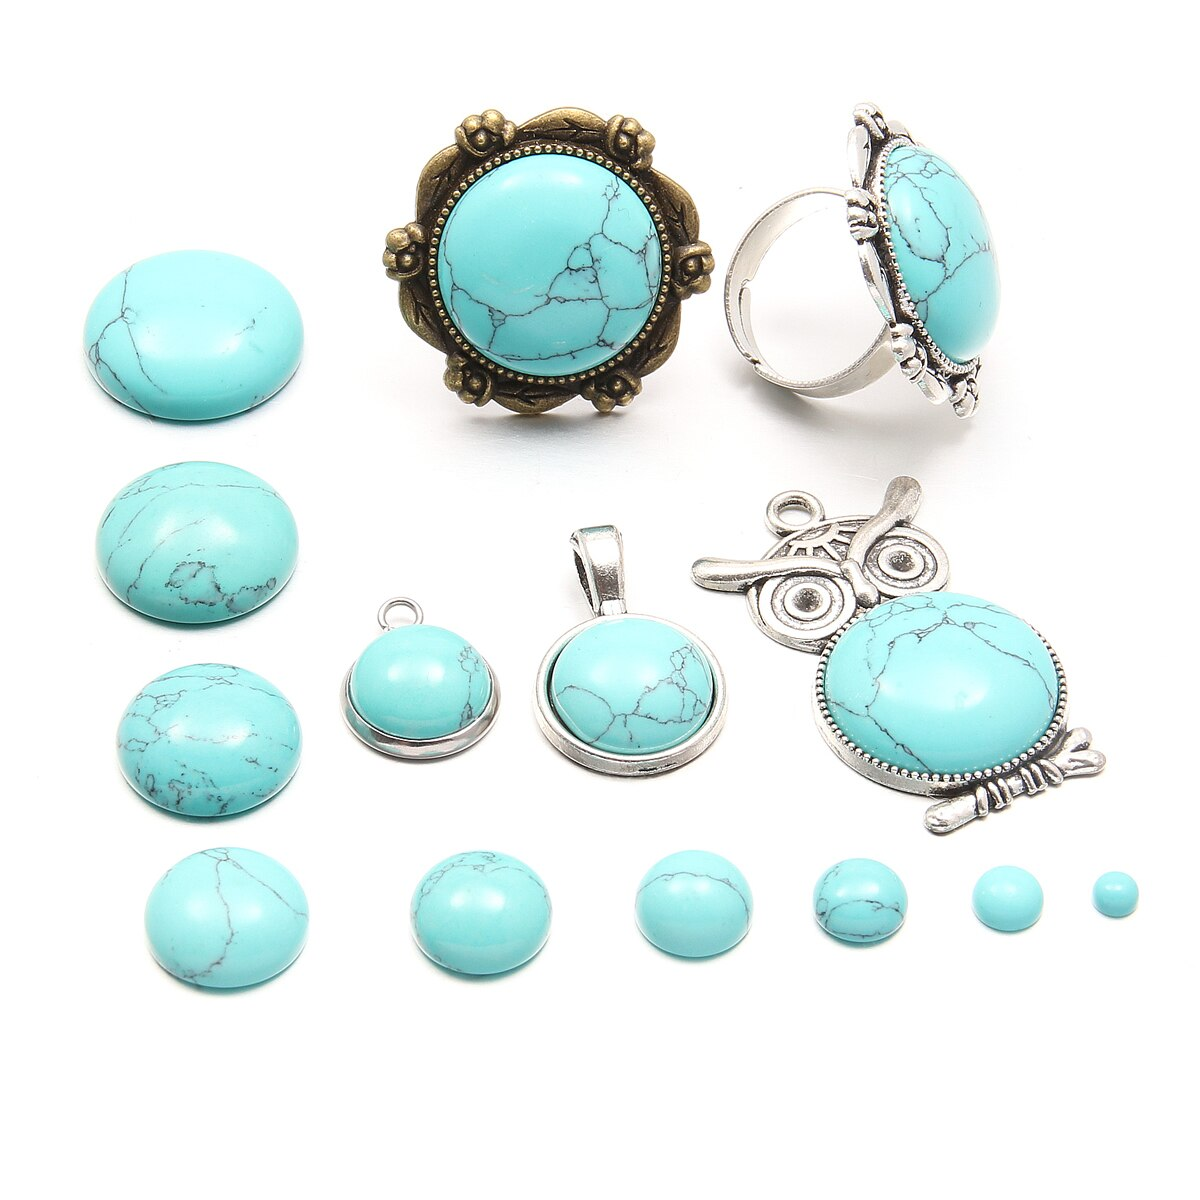 AliExpress - Natural Stone blue turquoise Cabochon Beads 8 6 10mm Round No Hole Loose Beads For jewelry making DIY Ring Necklace accessories